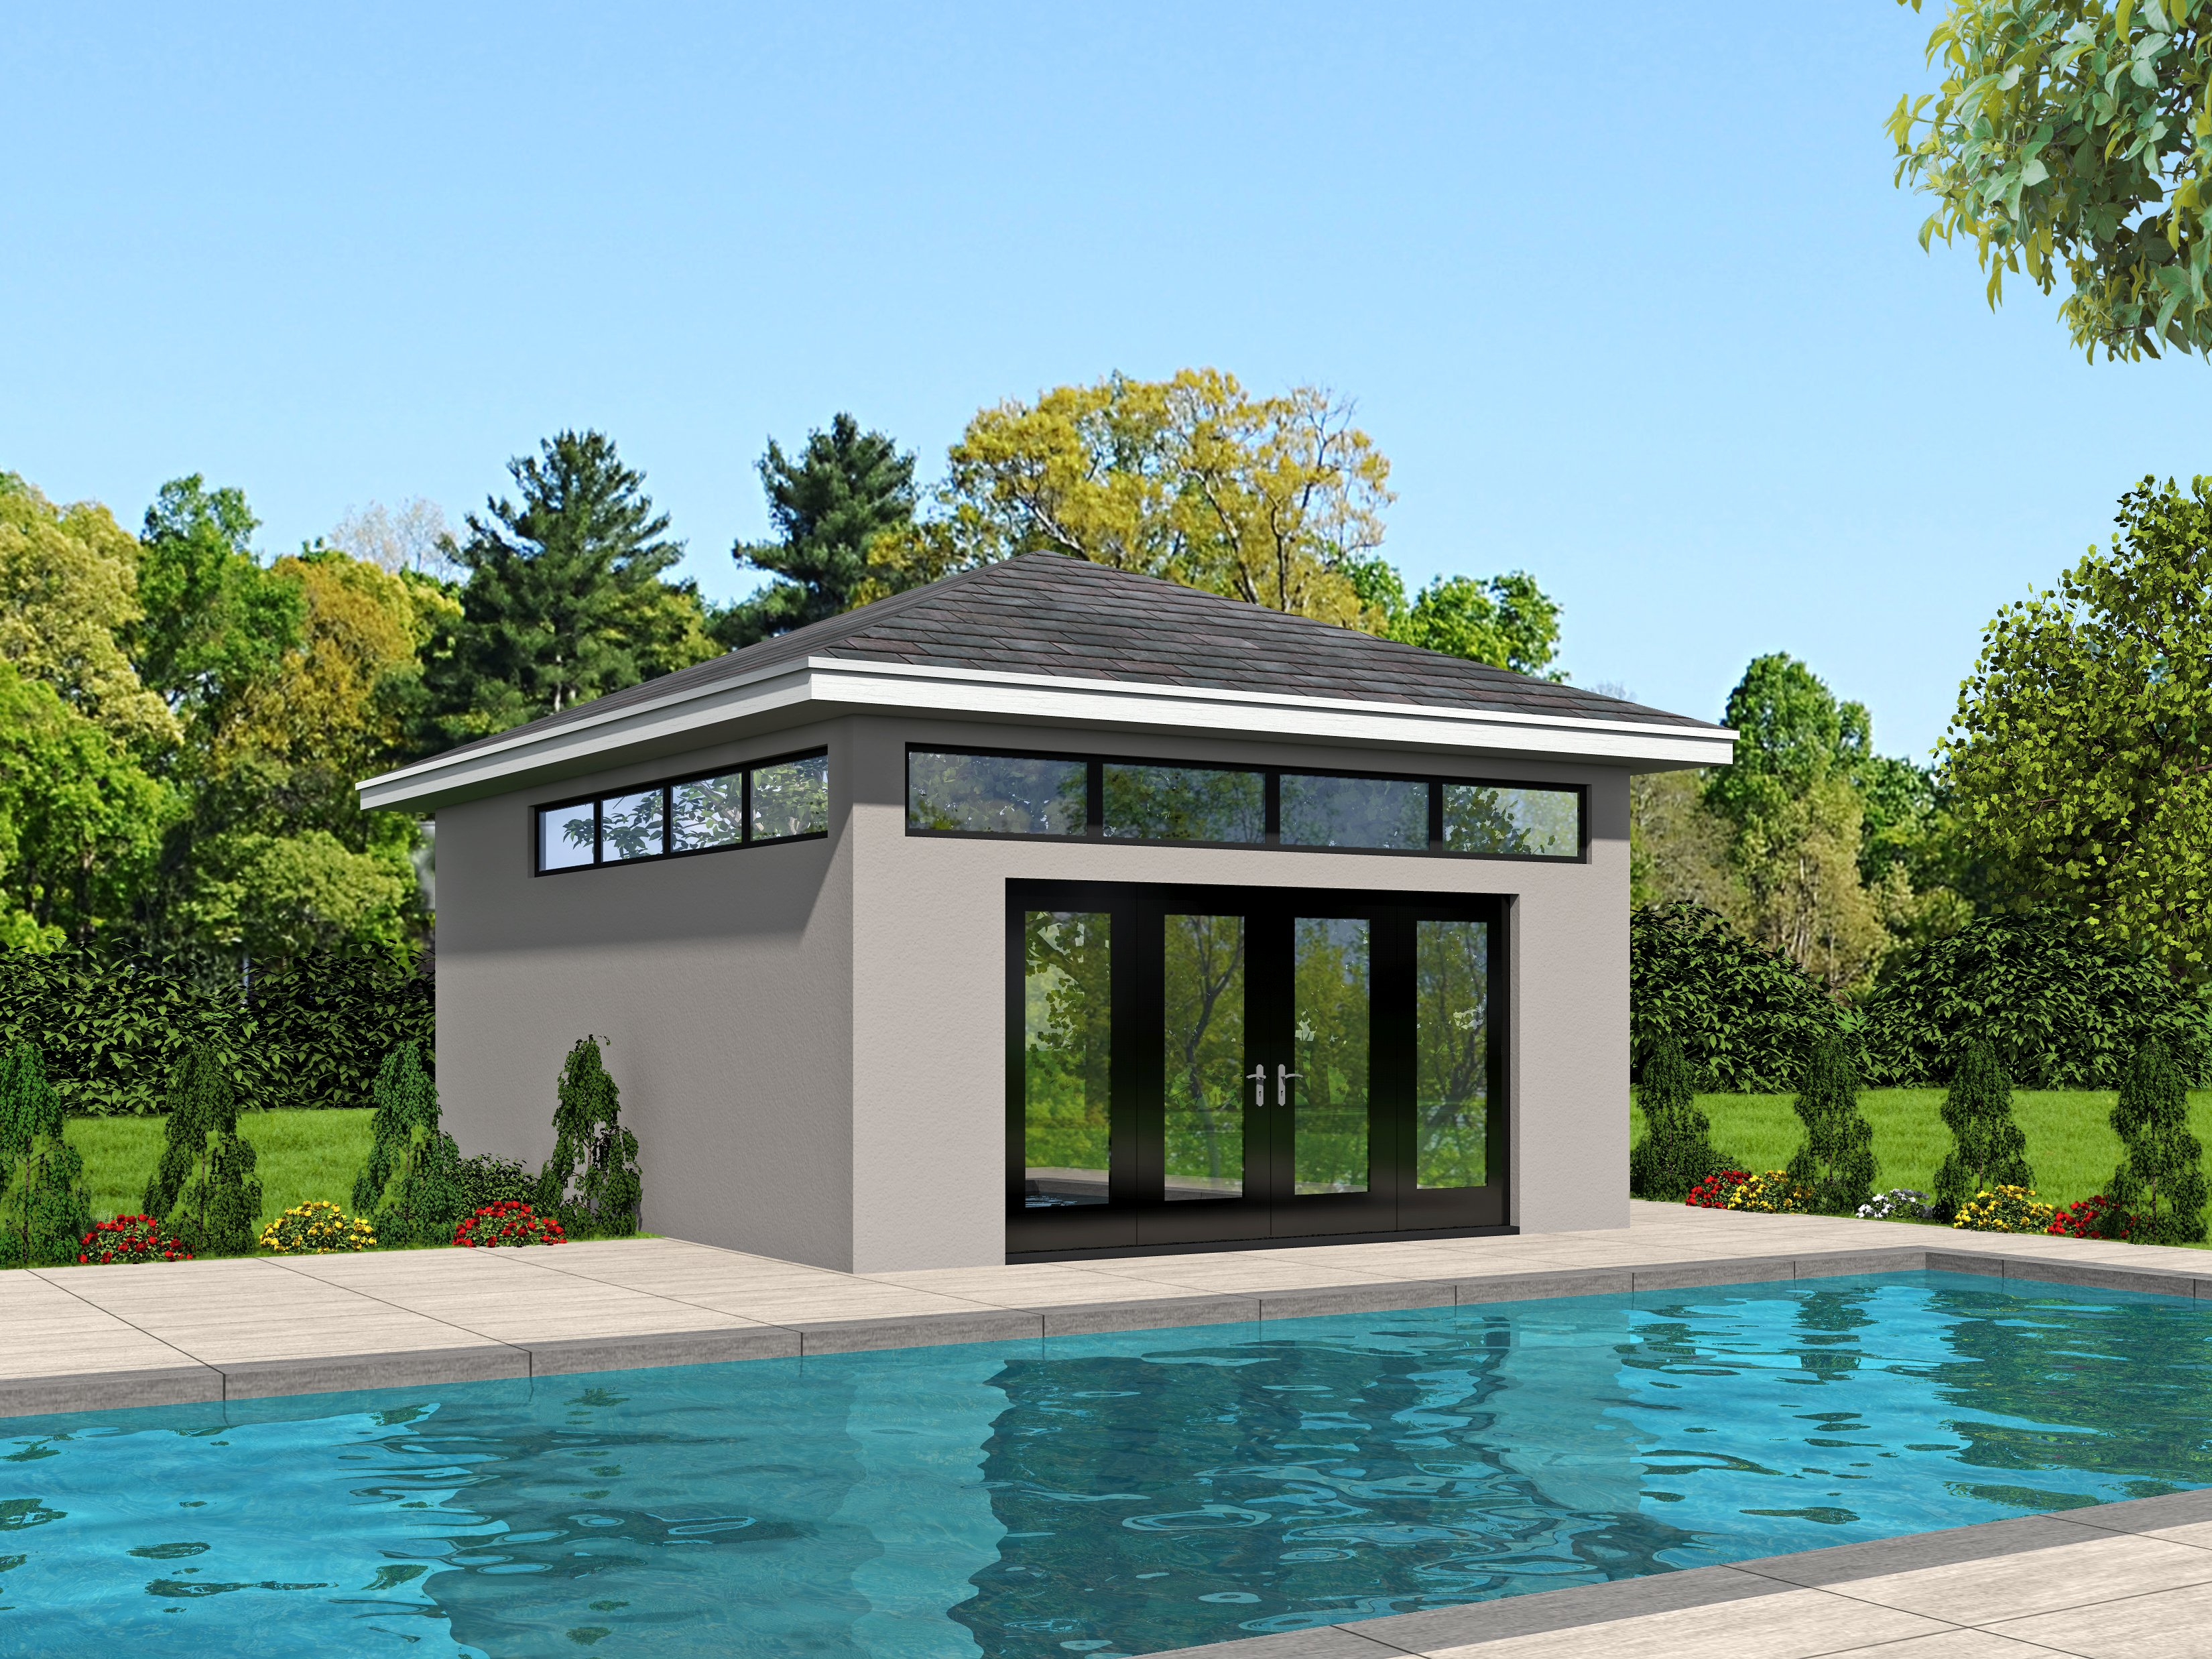 pool house plans house plans plus. Black Bedroom Furniture Sets. Home Design Ideas